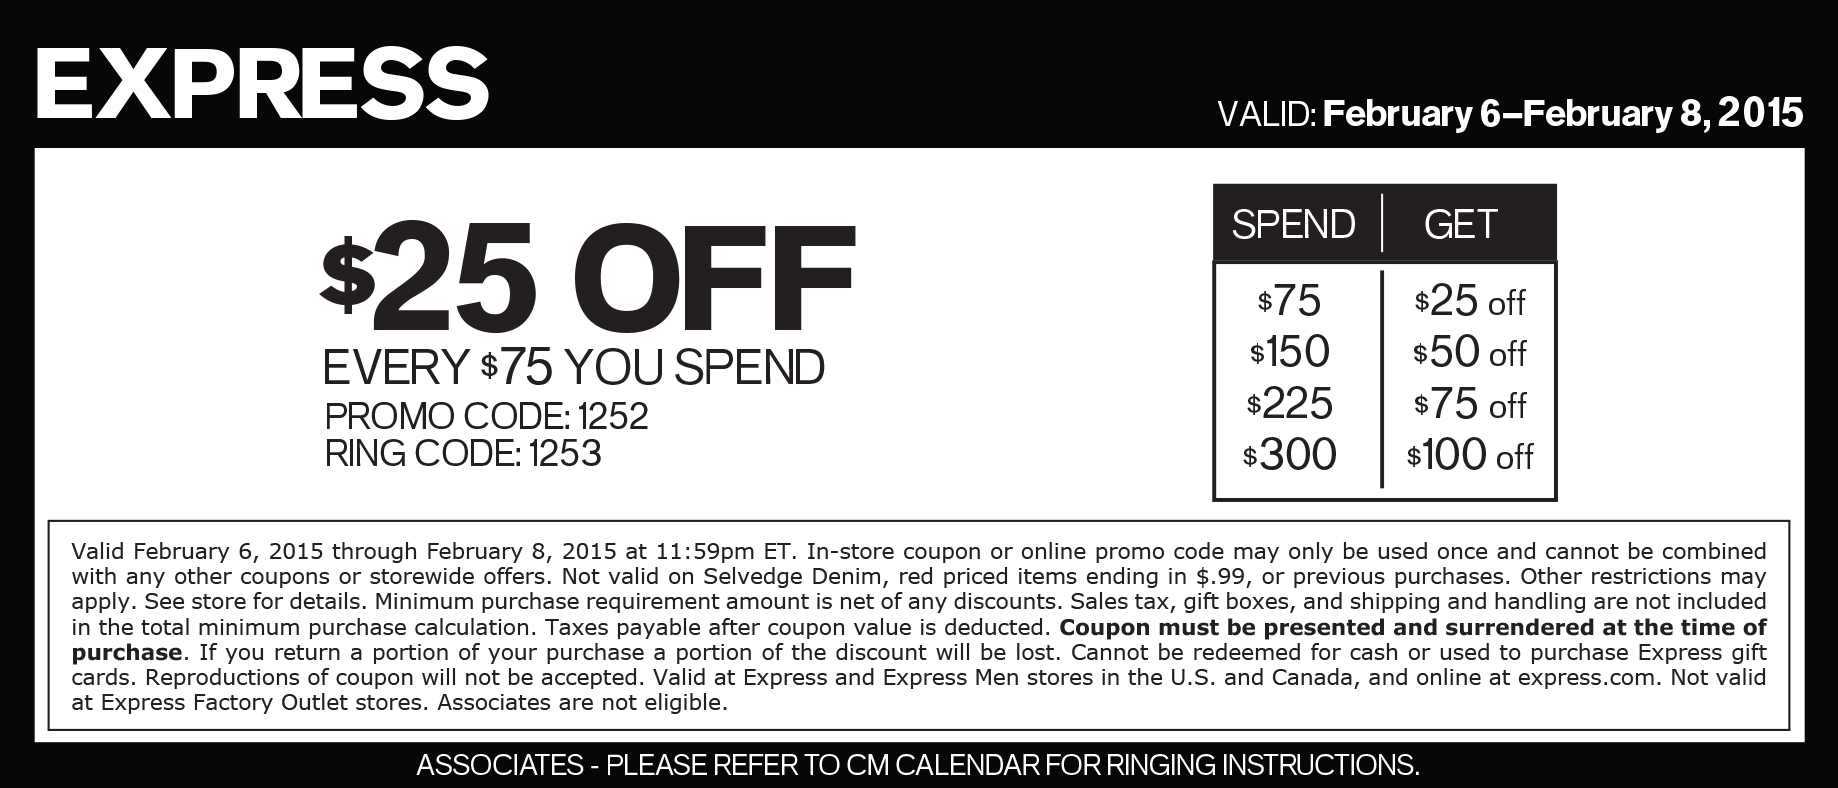 Express coupon code